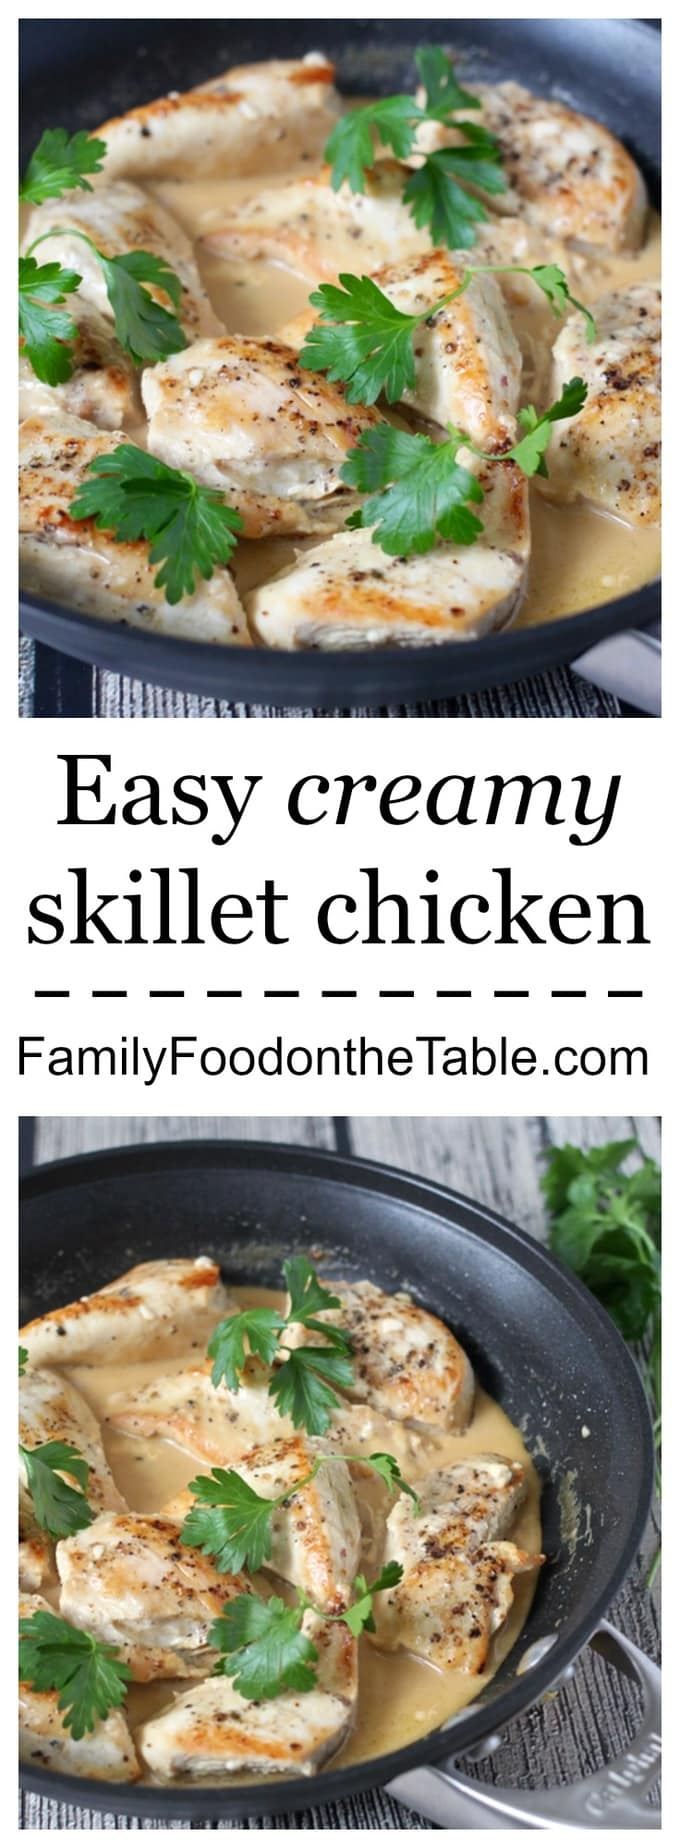 This creamy skillet chicken has a velvety smooth sauce from just 2 ingredients - a great, easy weeknight dinner! #chickendinner #chickenrecipes #easydinnerideas #easyrecipes